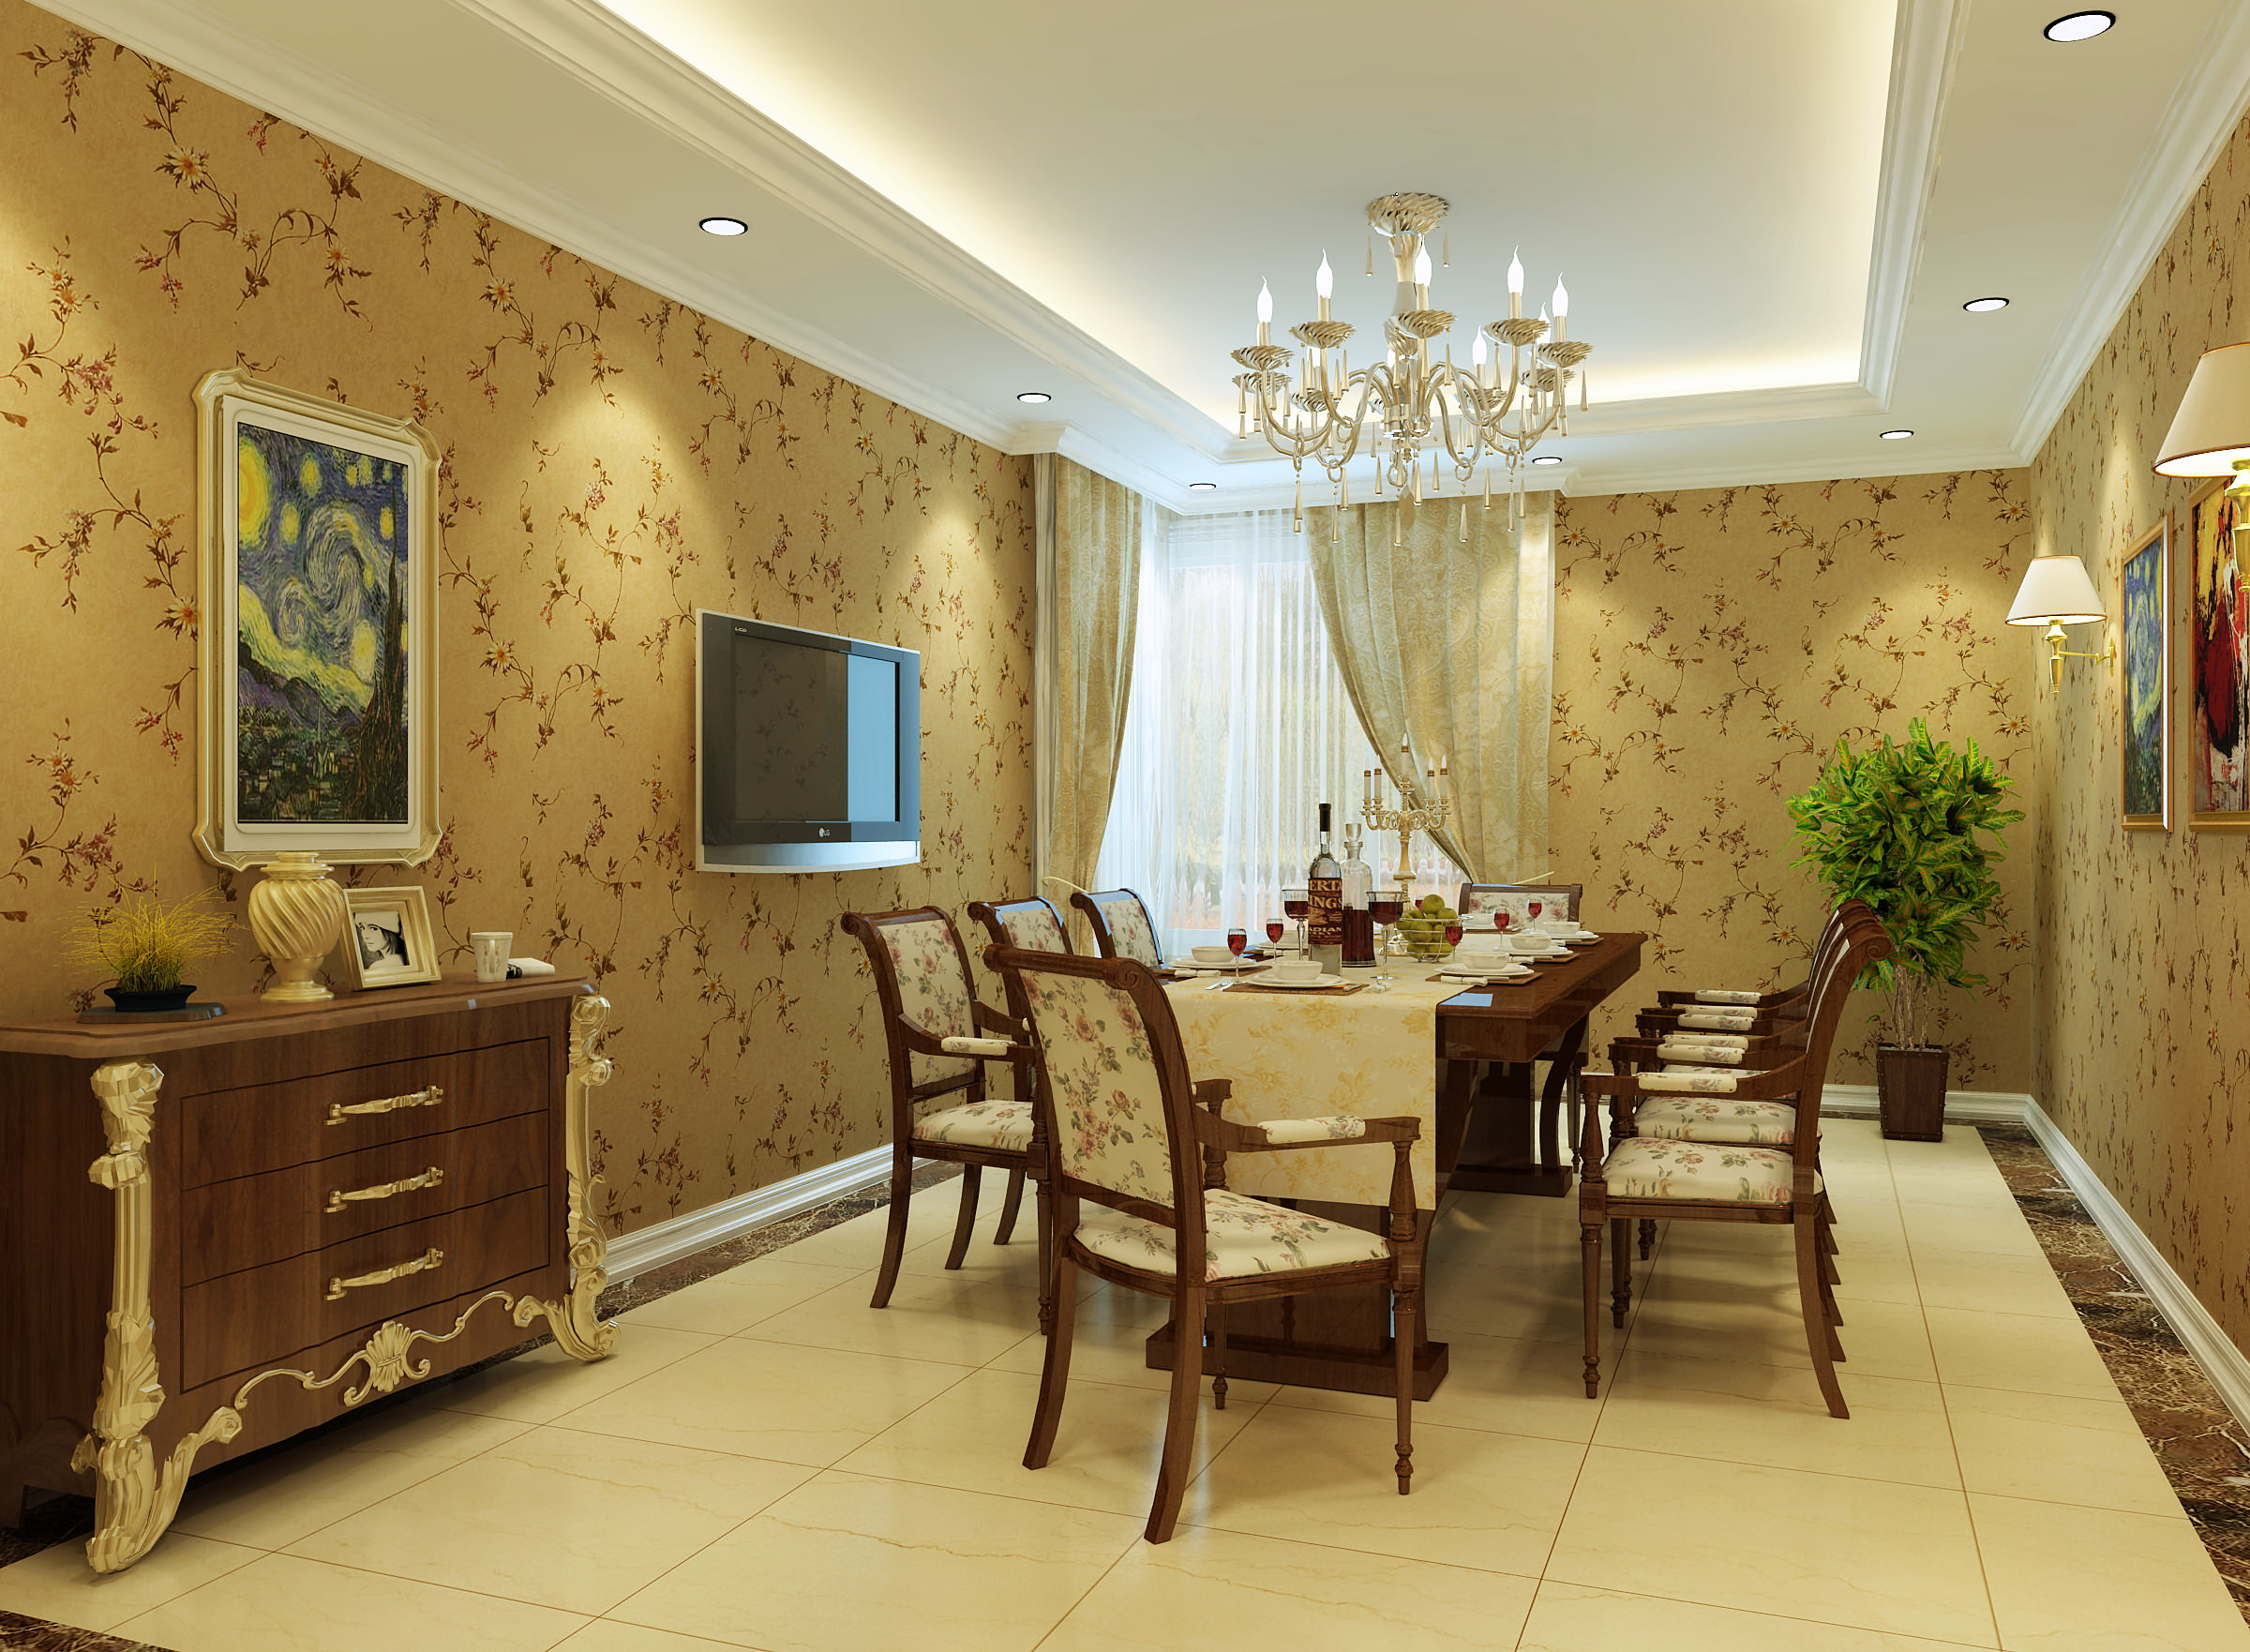 Charmant ... Dining Room With Tv And Wall Painting 3d Model Max 2